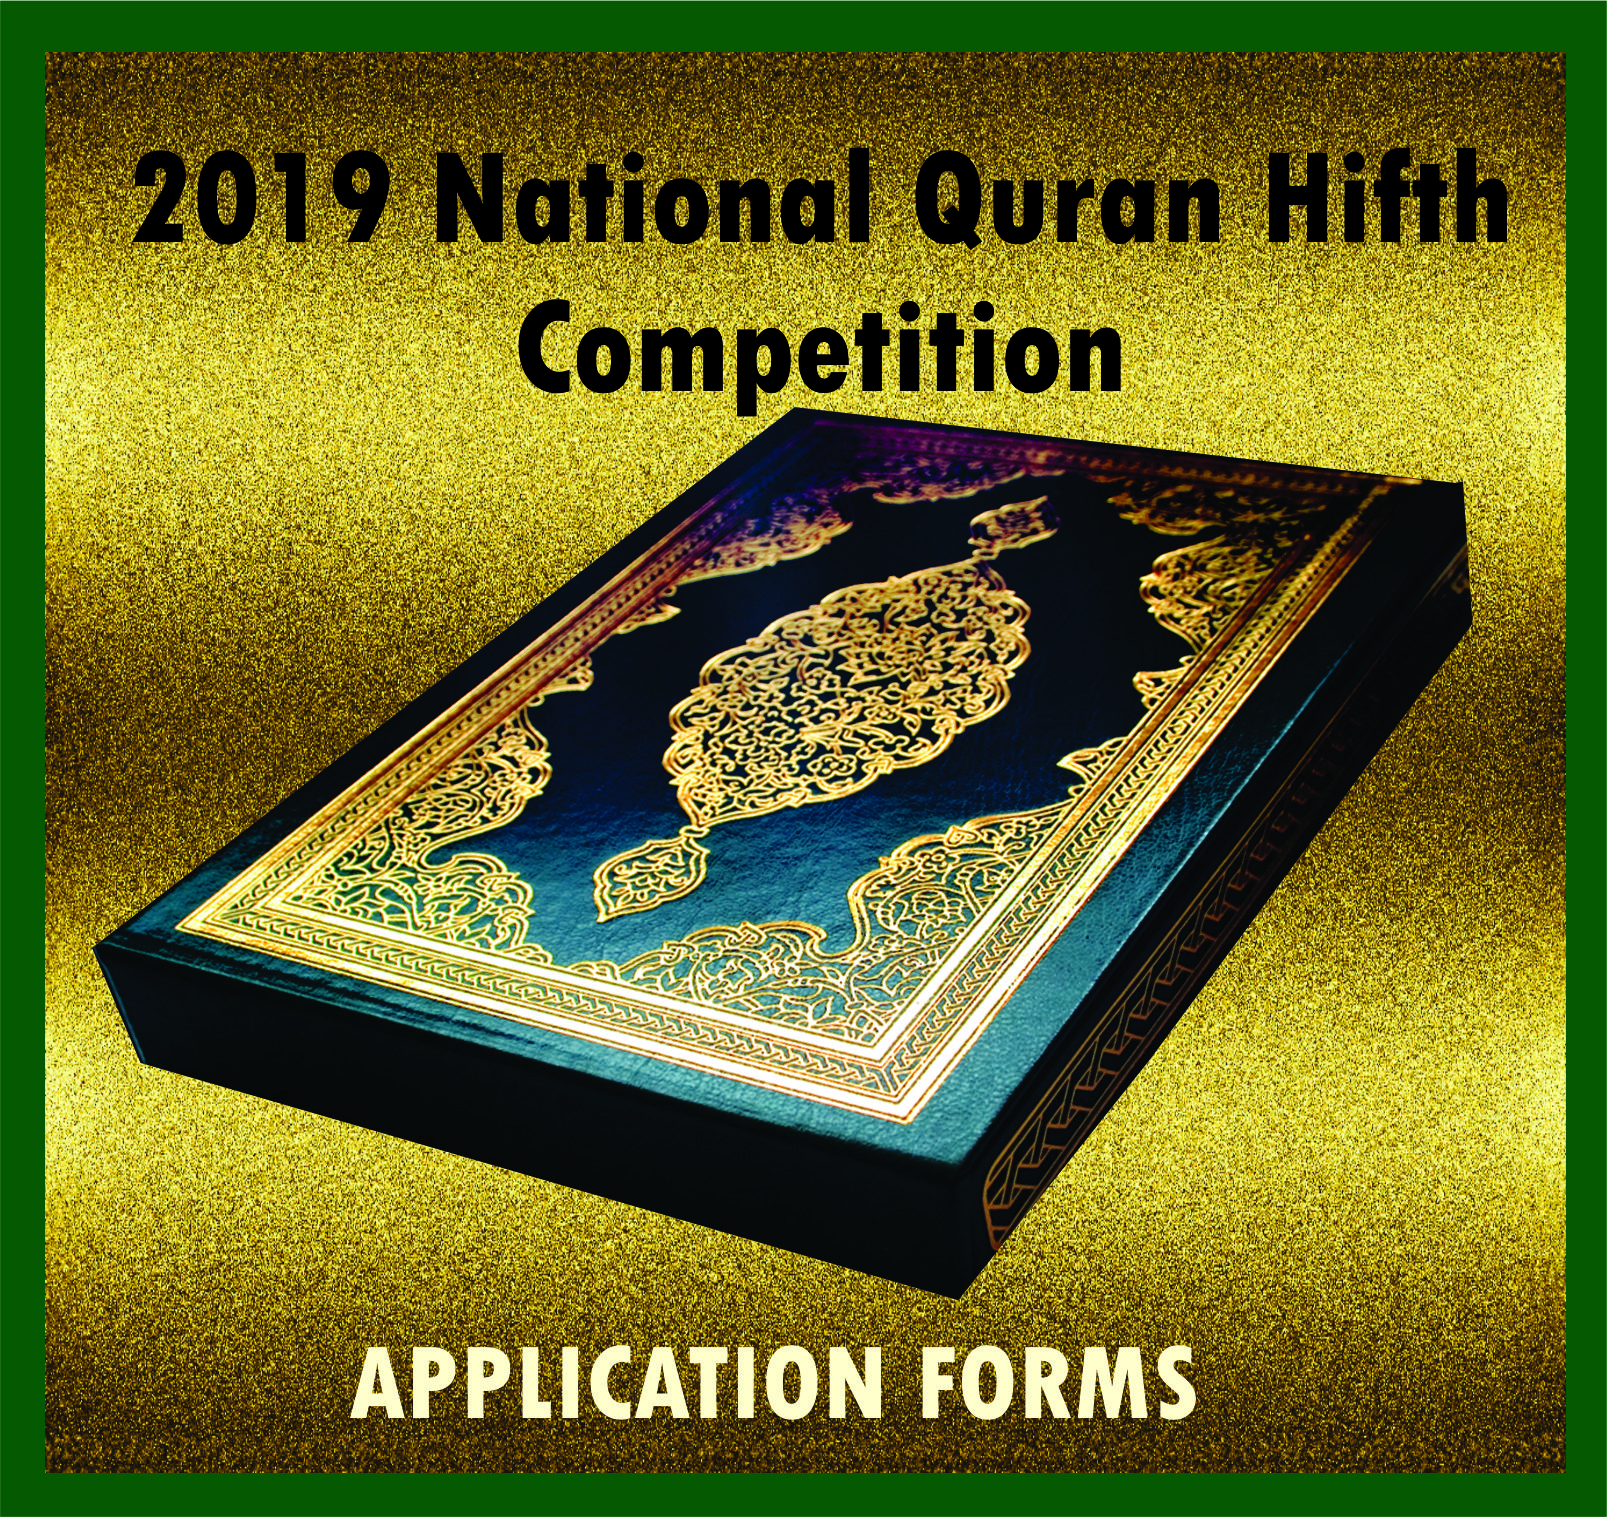 - 2019 COMPETITION ICON - 2019 Competition Application Form Download